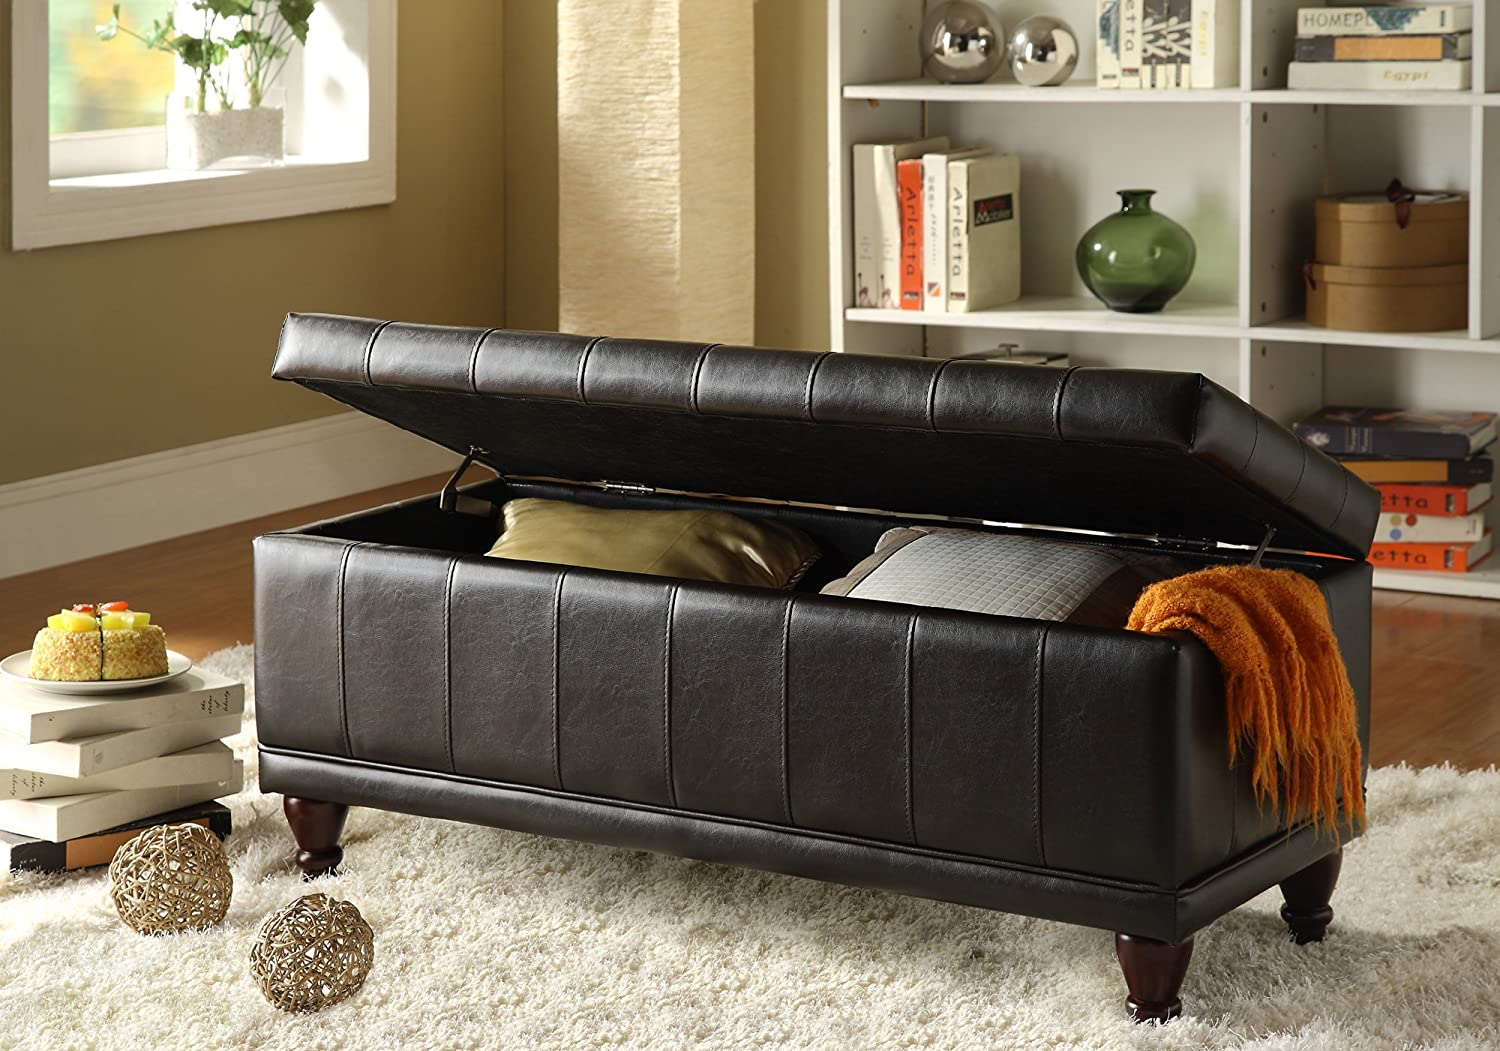 Amazon.com: Homelegance 4730PU Lift Top Storage Bench with Tufted ...